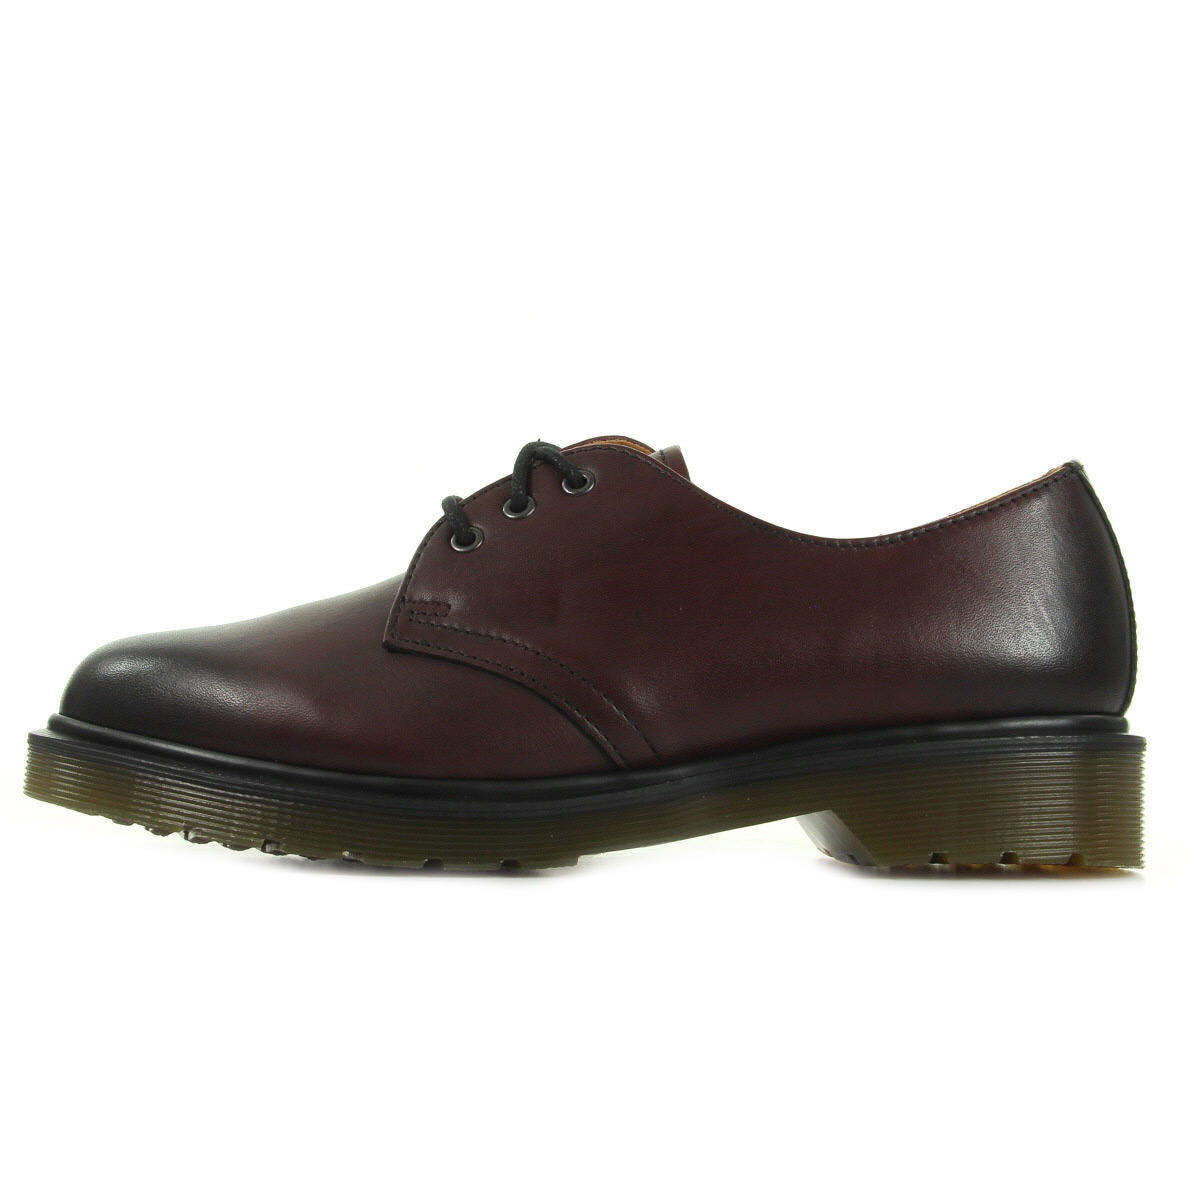 Dr. Martens 1461 Cherry Red Antique Temperley 21153600, Ville femme